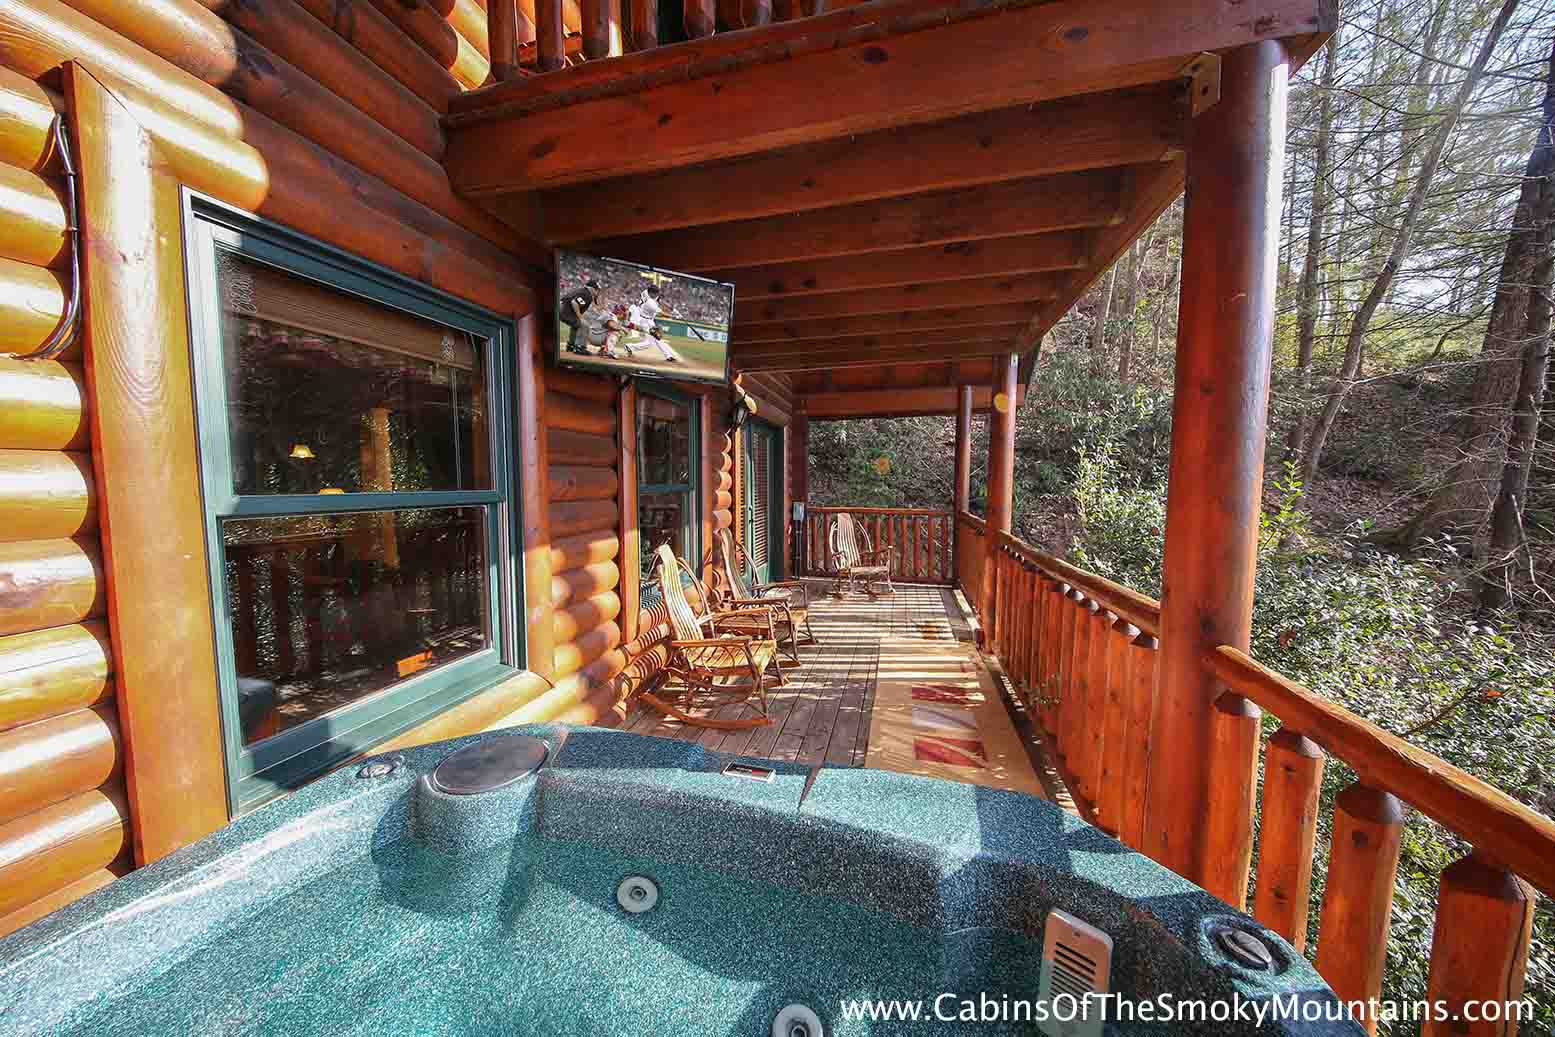 Gatlinburg cabin comfort zone 3 bedroom sleeps 13 for Cabin in gatlinburg with hot tub